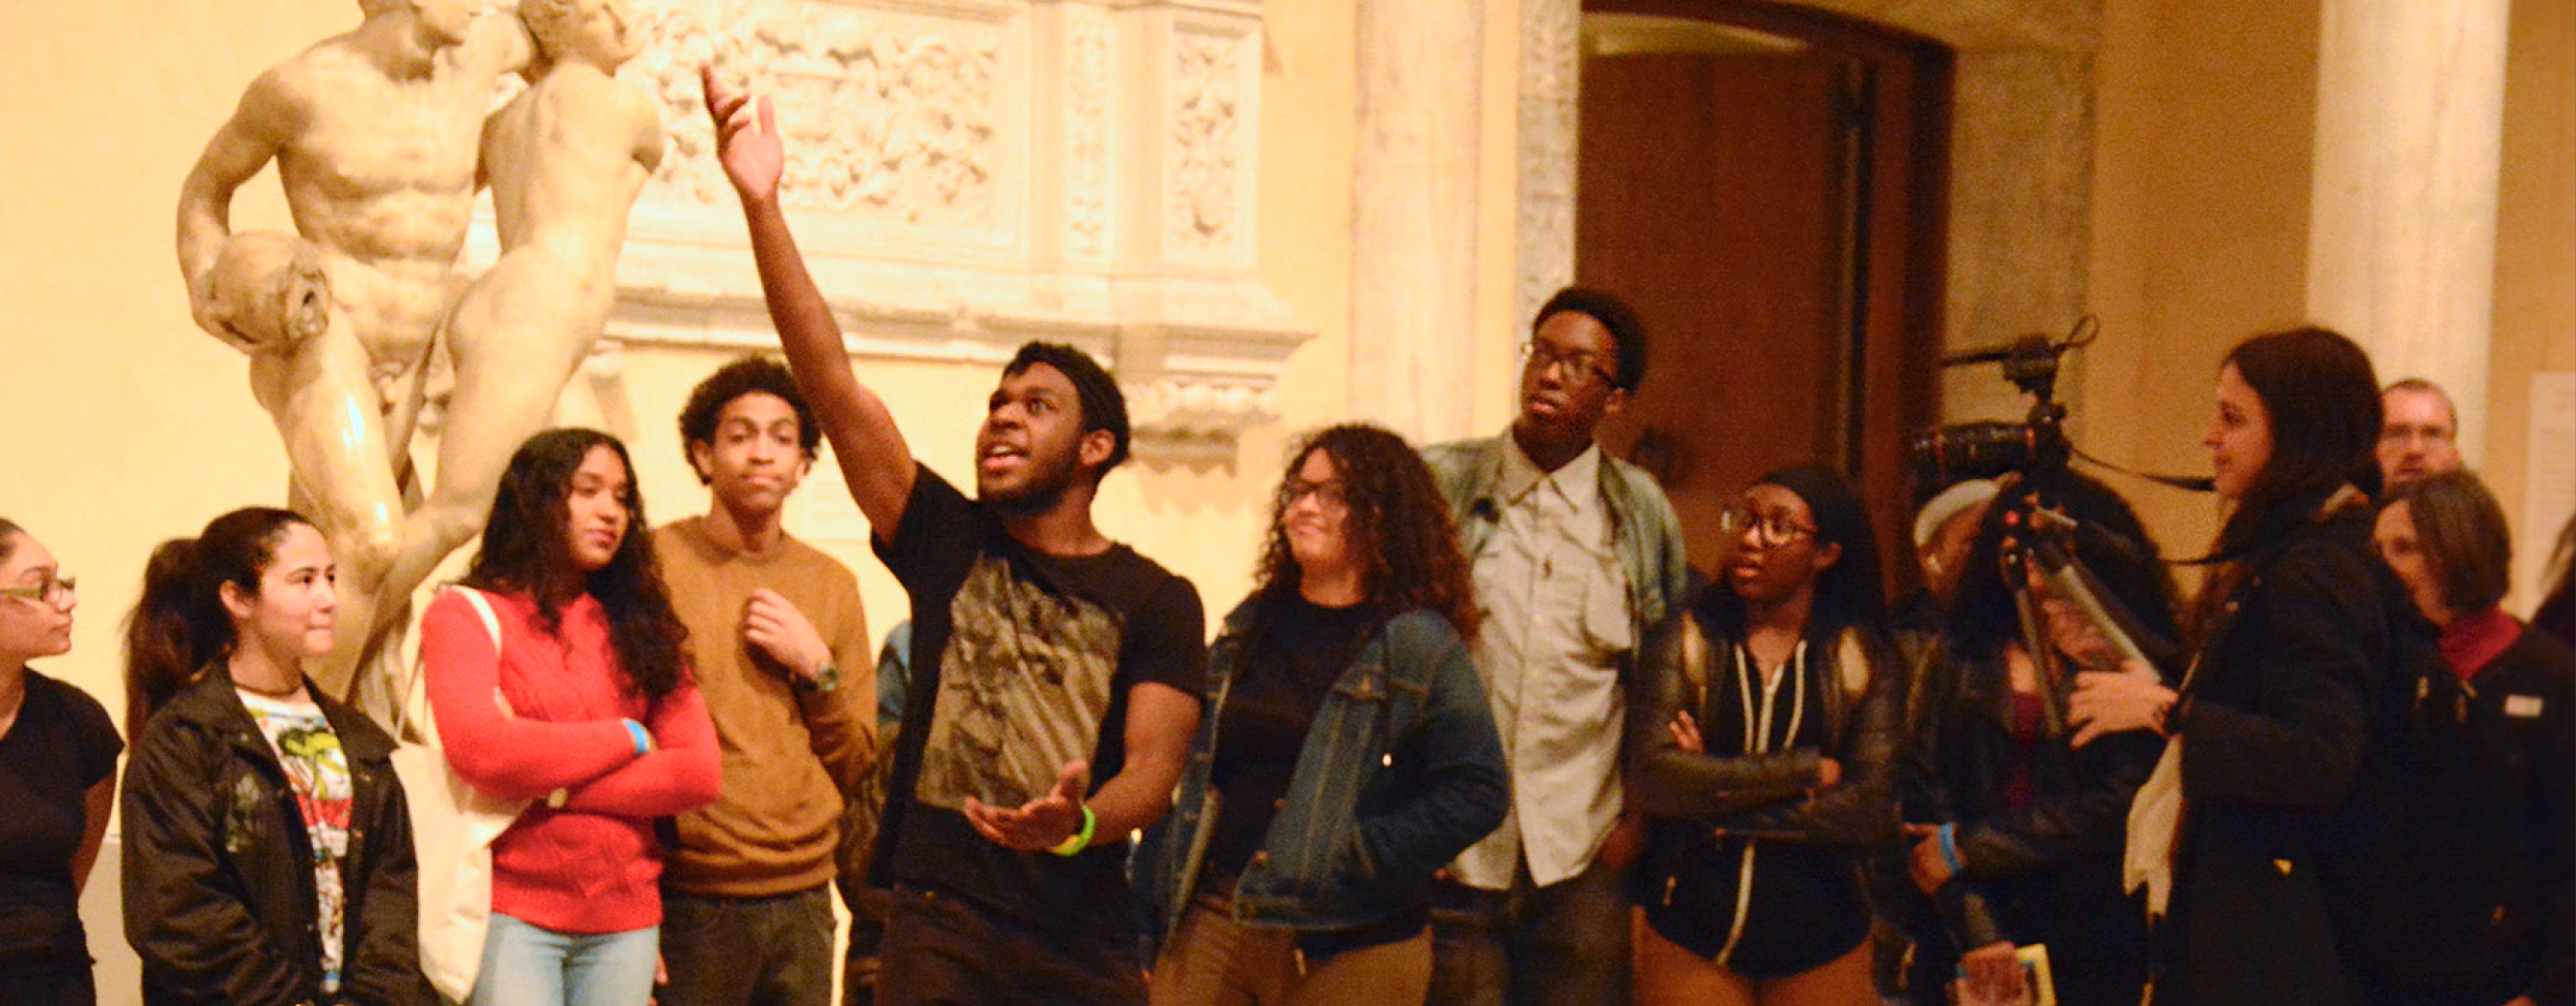 <p>Friday October 20, 5–8 pm Grab your friends and take over The Met for the night. Drop in for teen-only activities across the Museum including art making, performances, music, and more. Discover what you can also do at over 40 NYC cultural and community organizations. Doors open at 5 pm. [&hellip;]</p>